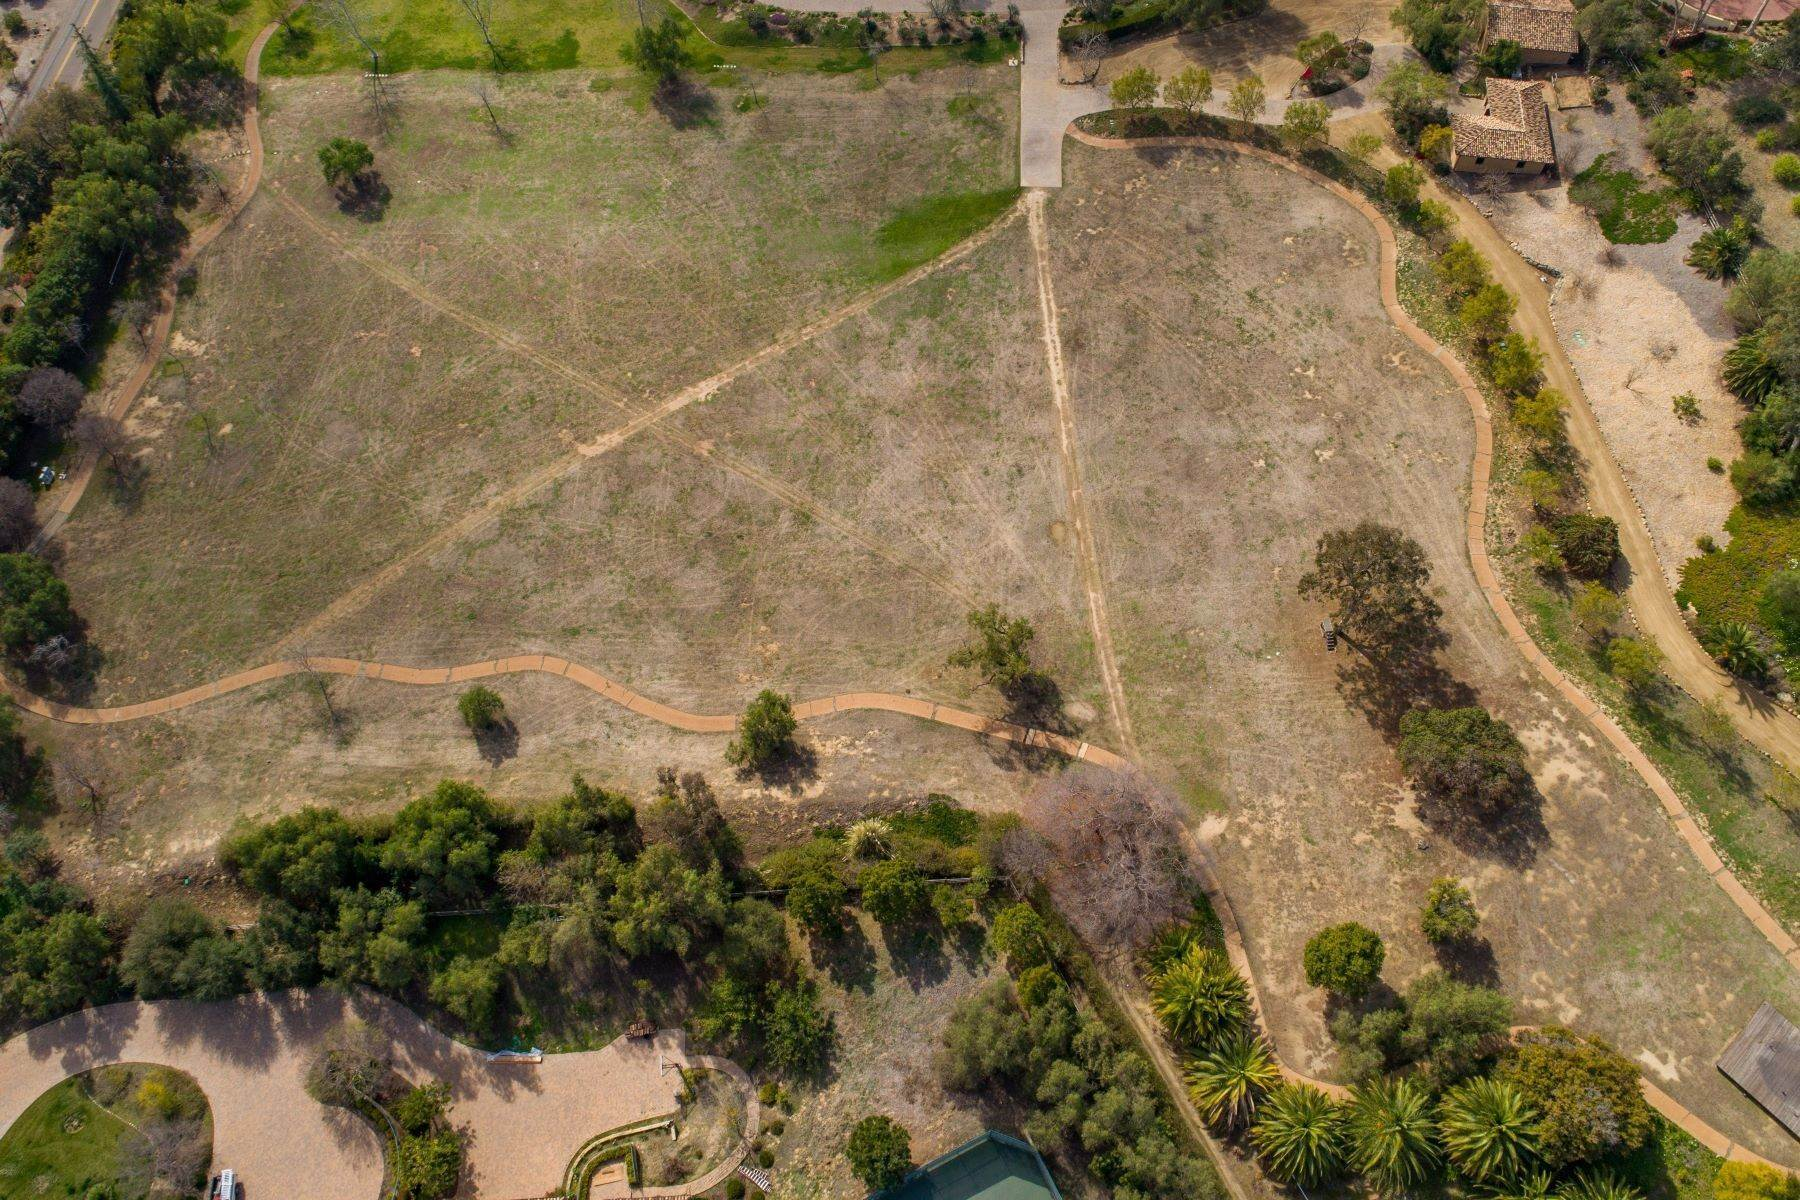 14. Land for Sale at 17048 El Mirador, Rancho Santa Fe, CA 92067 17048 El Mirador Rancho Santa Fe, California 92067 United States